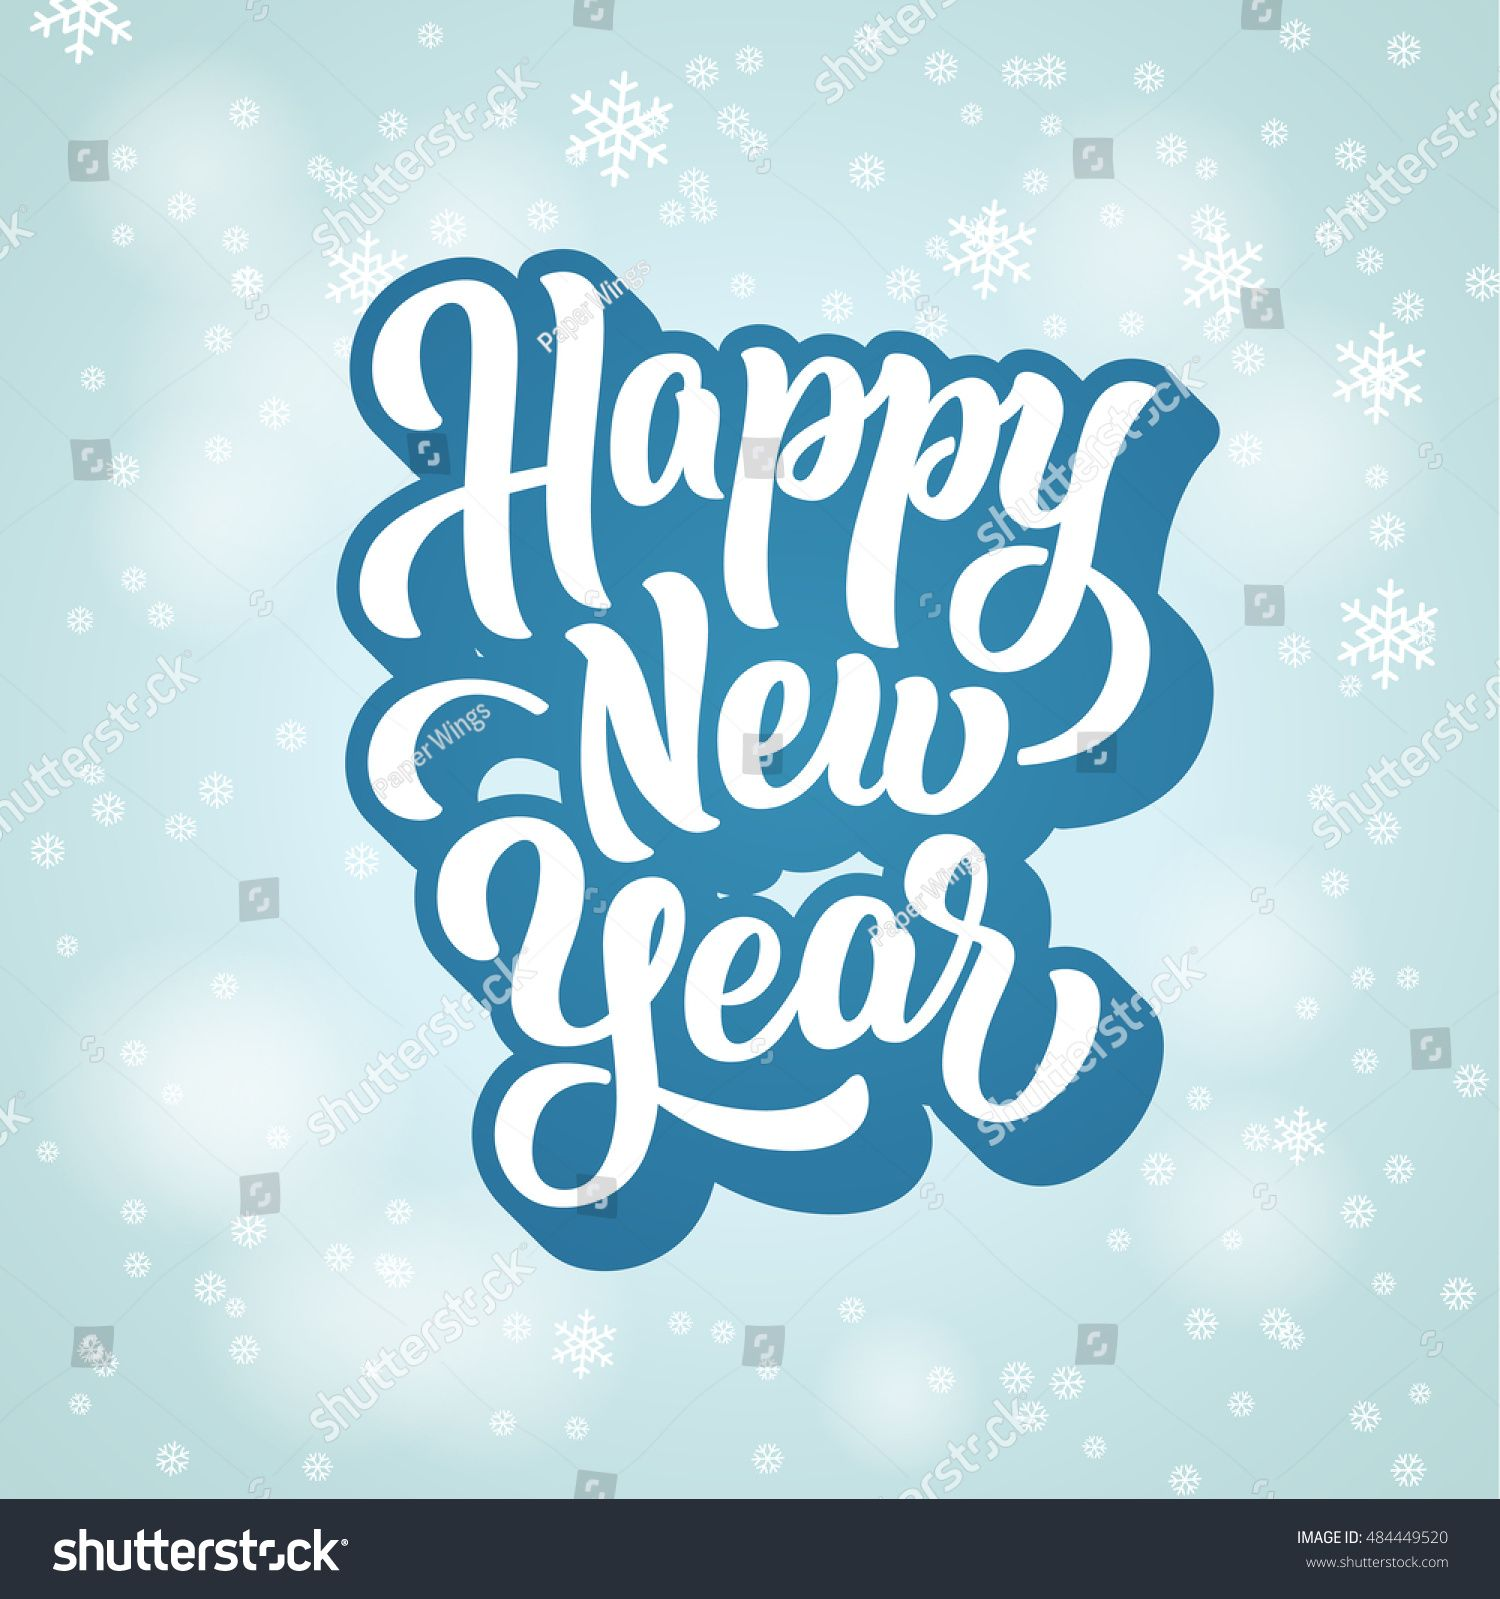 Pin by anshuman biswas on Adobe Lettering, Happy new